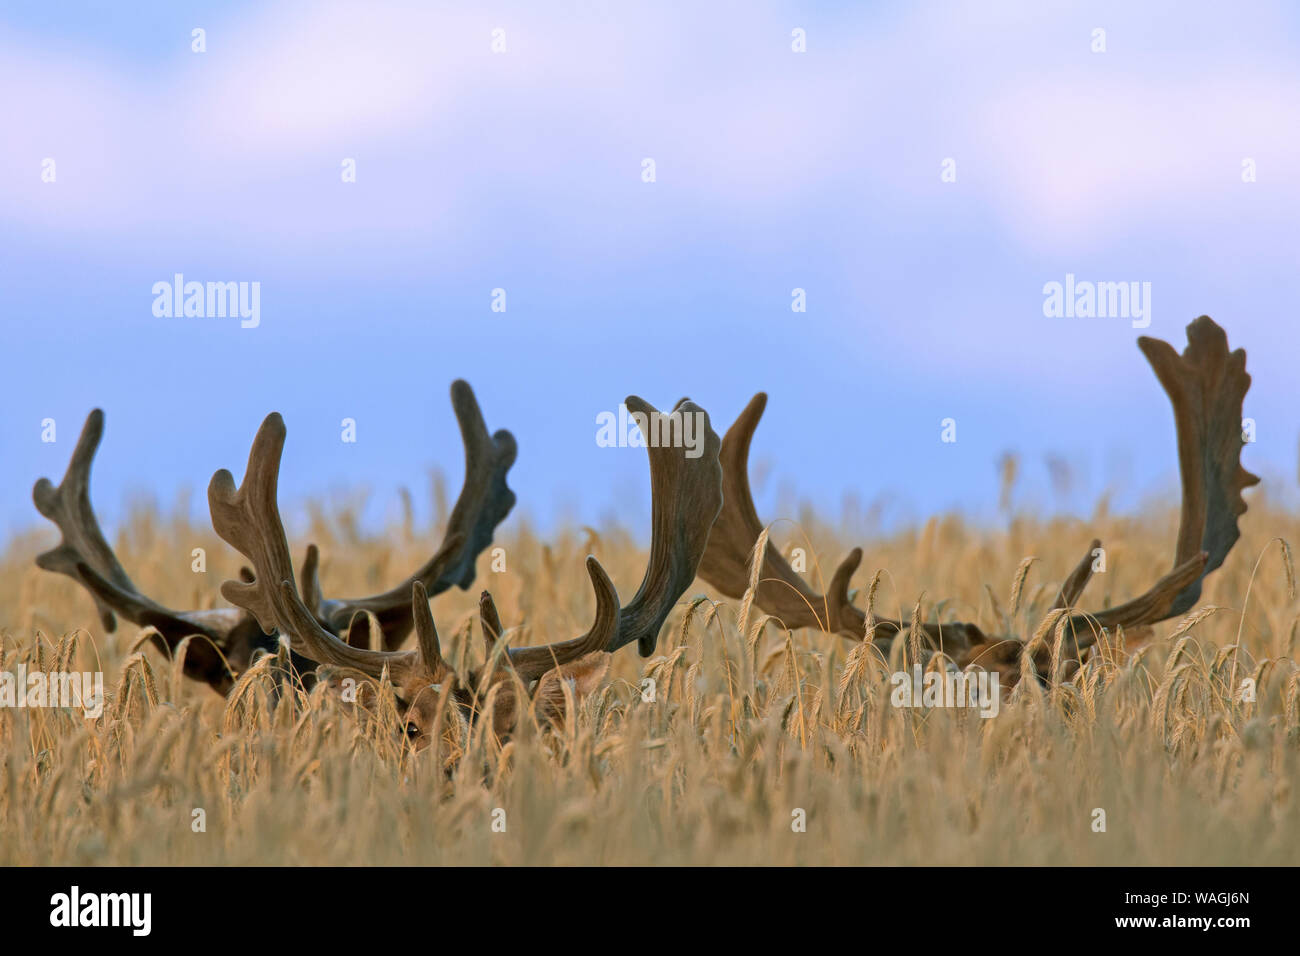 Three hidden fallow deer (Dama dama) bucks with antlers covered in velvet foraging in wheat field in summer Stock Photo